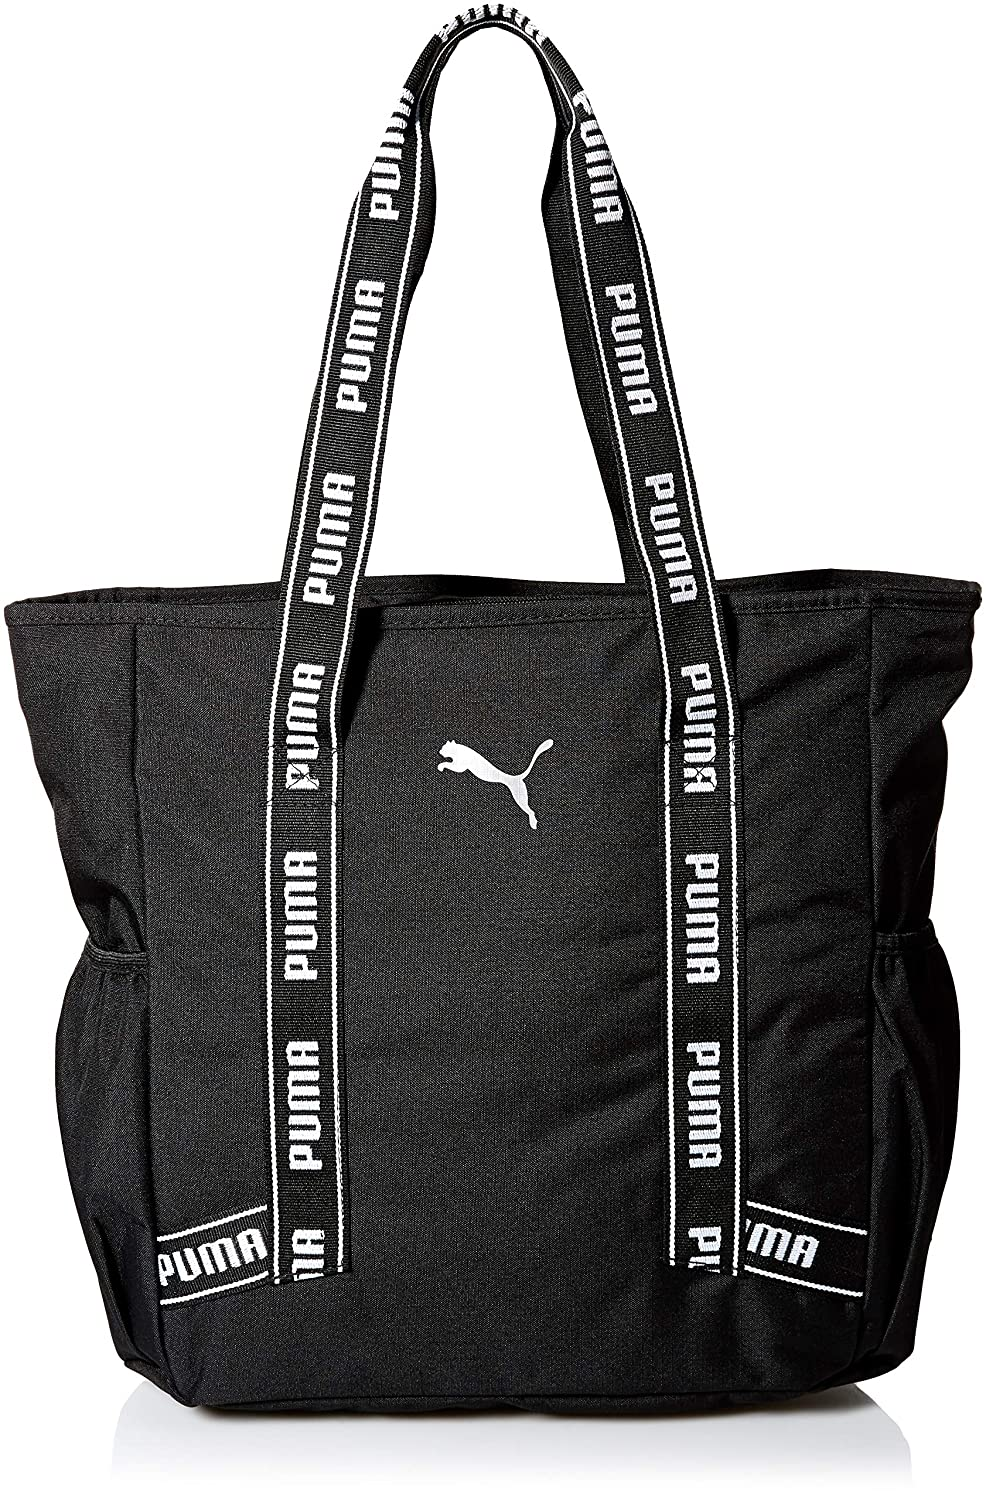 Amazon.com: PUMA Commute Tote Navy One Size: Clothing